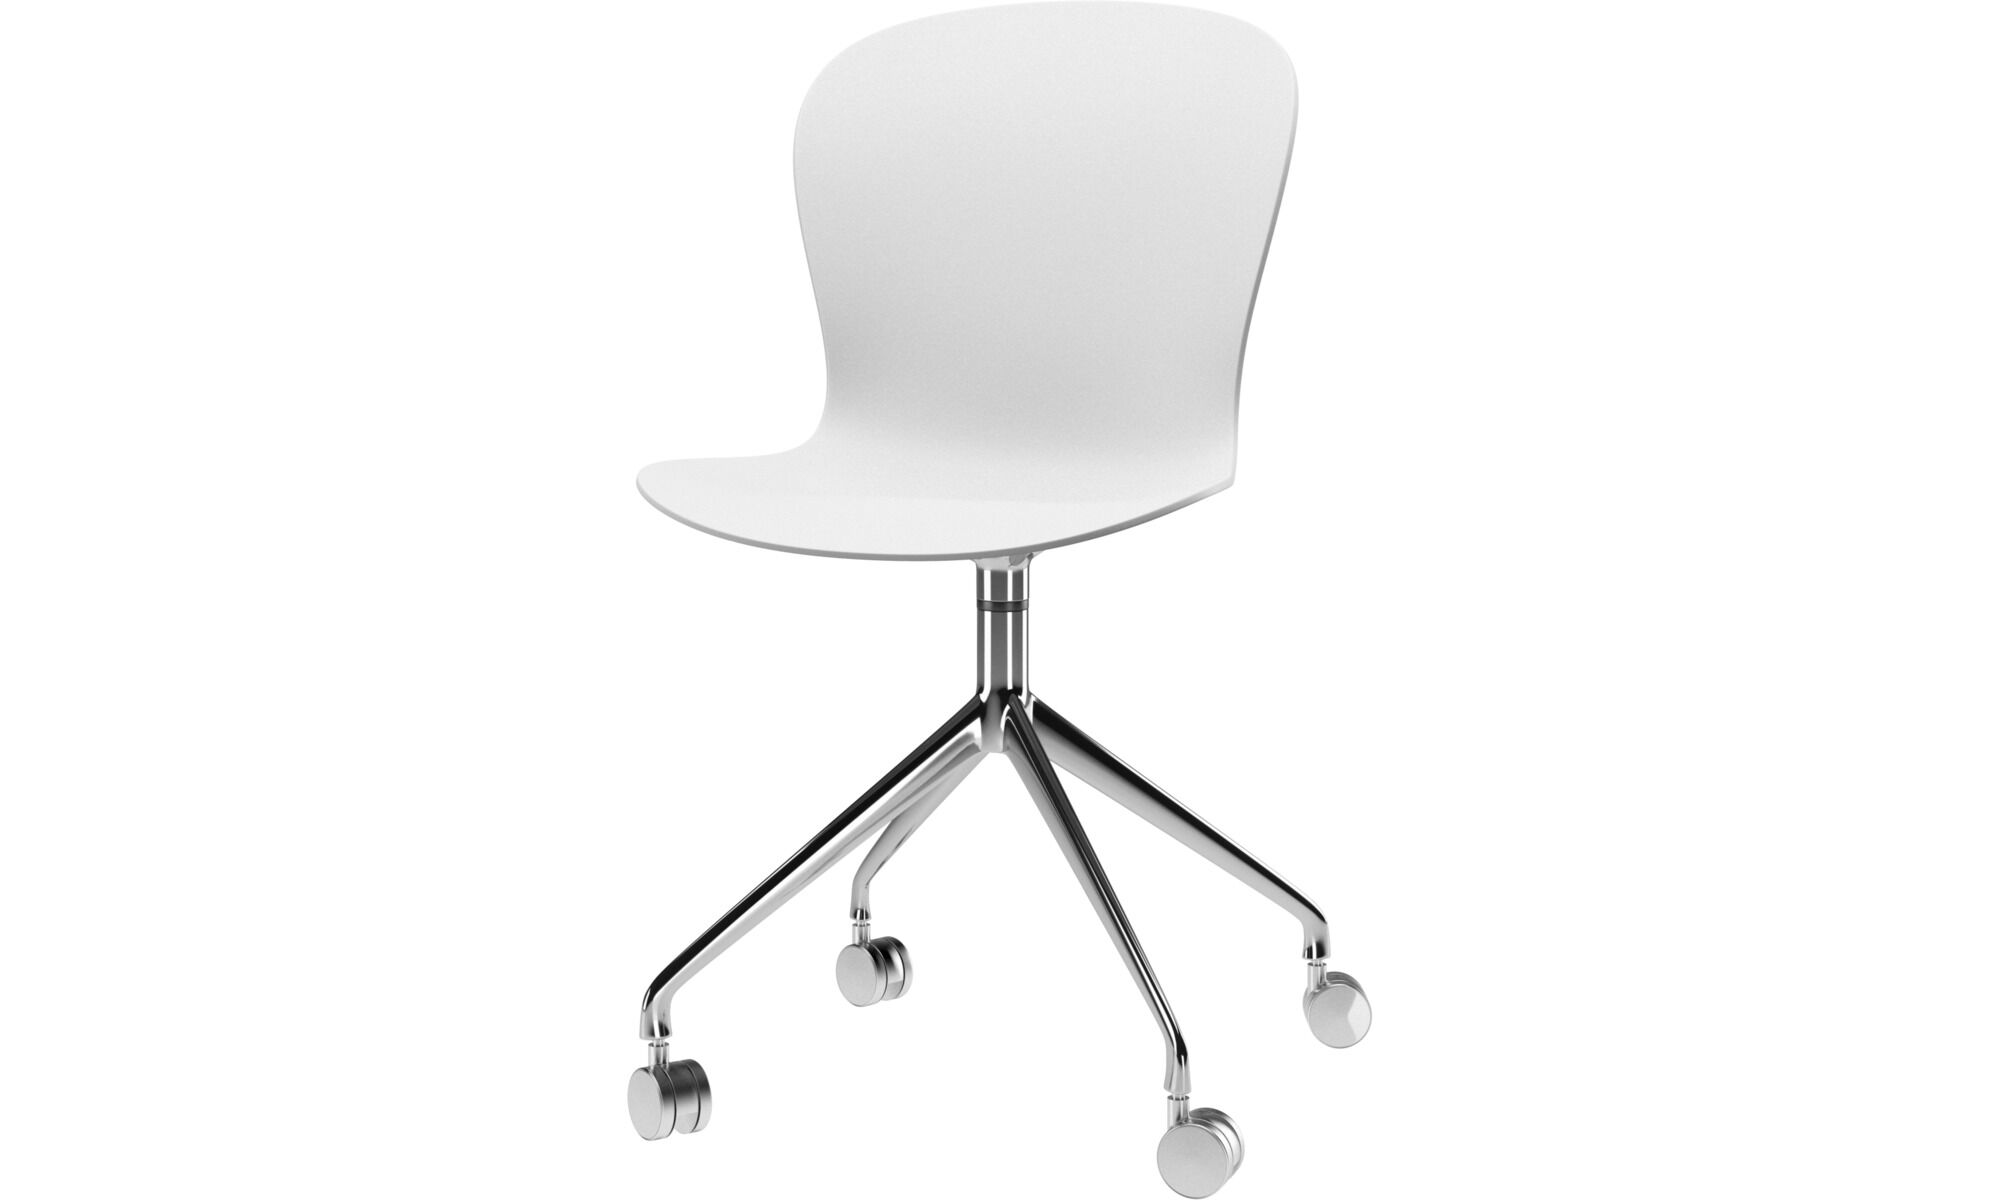 Dining Chairs   Adelaide Chair With Swivel Function And Wheels   White    Metal